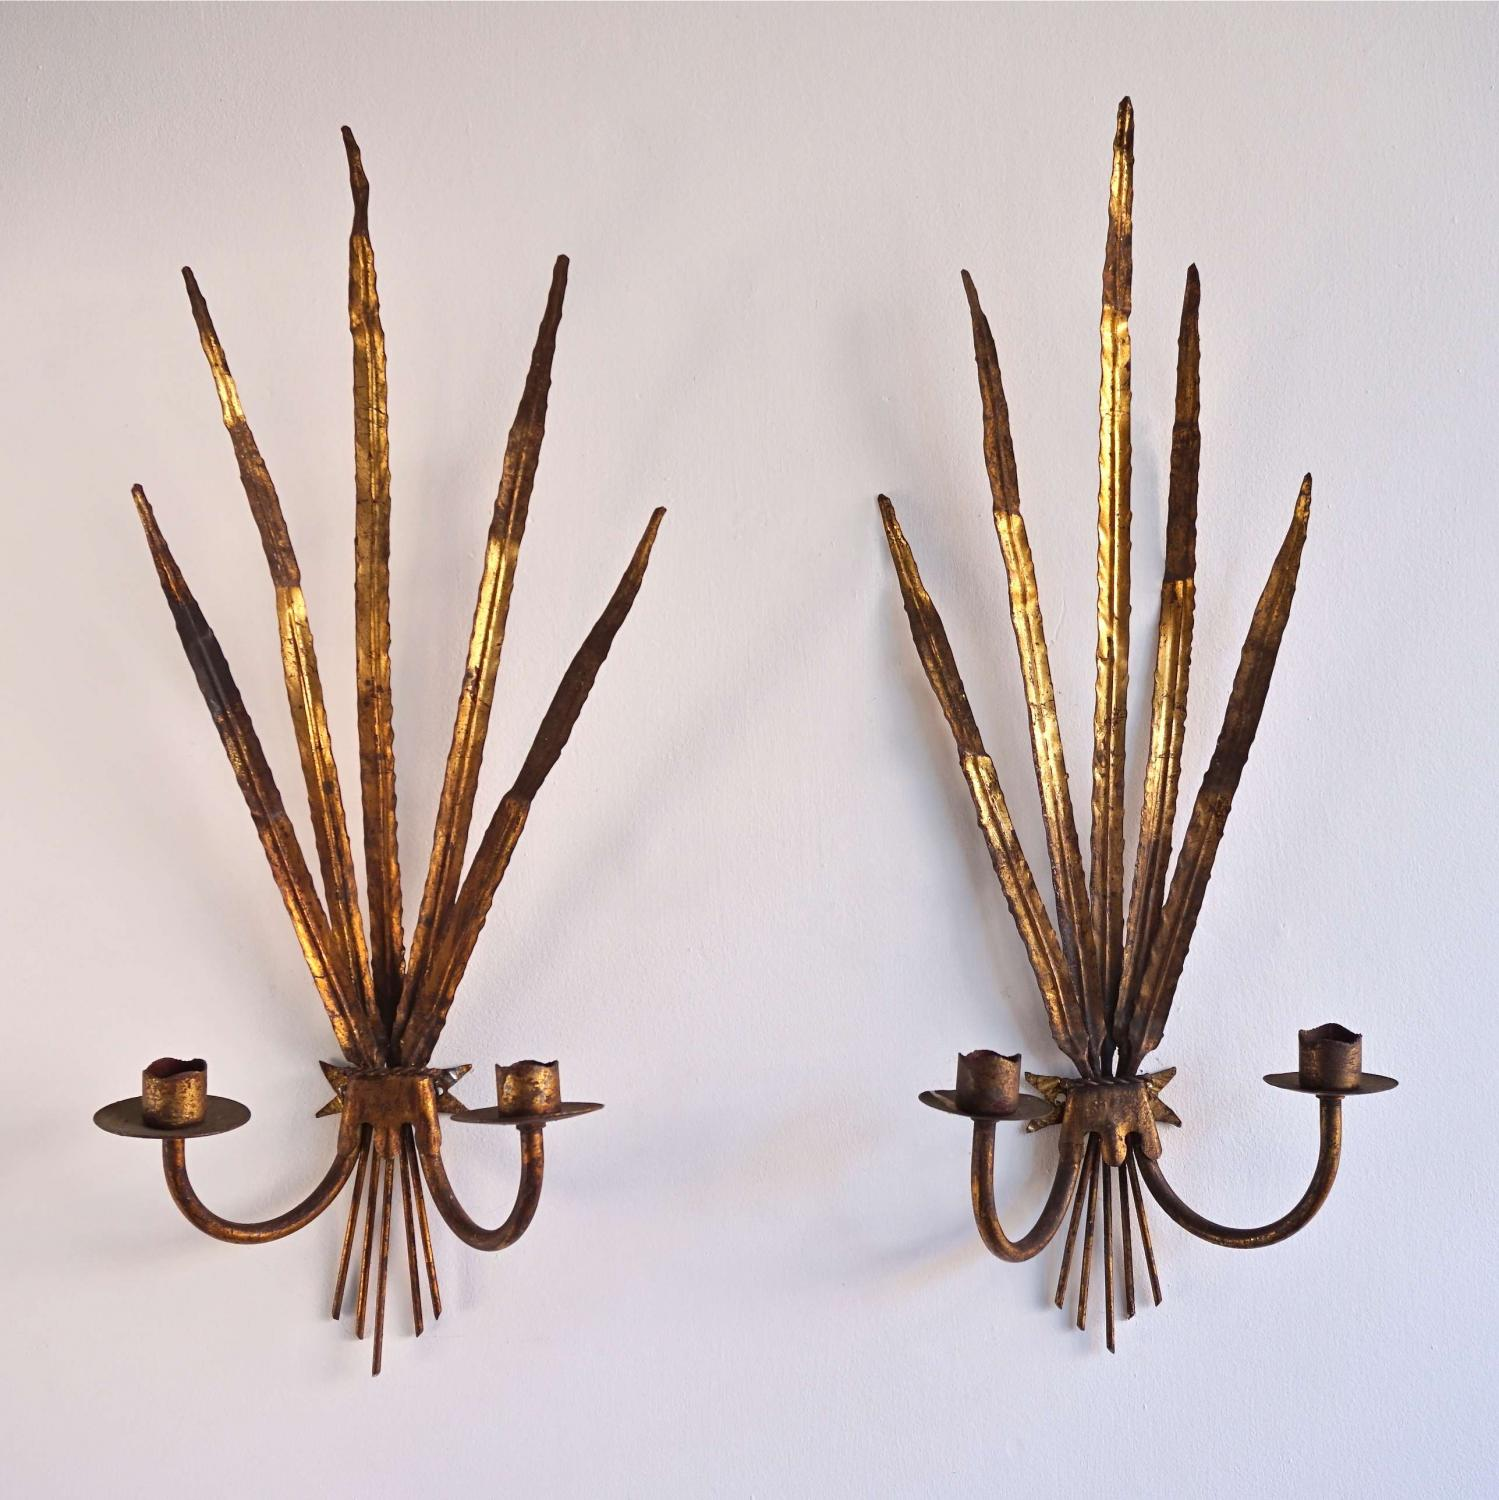 PAIR OF DECORATIVE GILT TOLLE WALL SCONCES